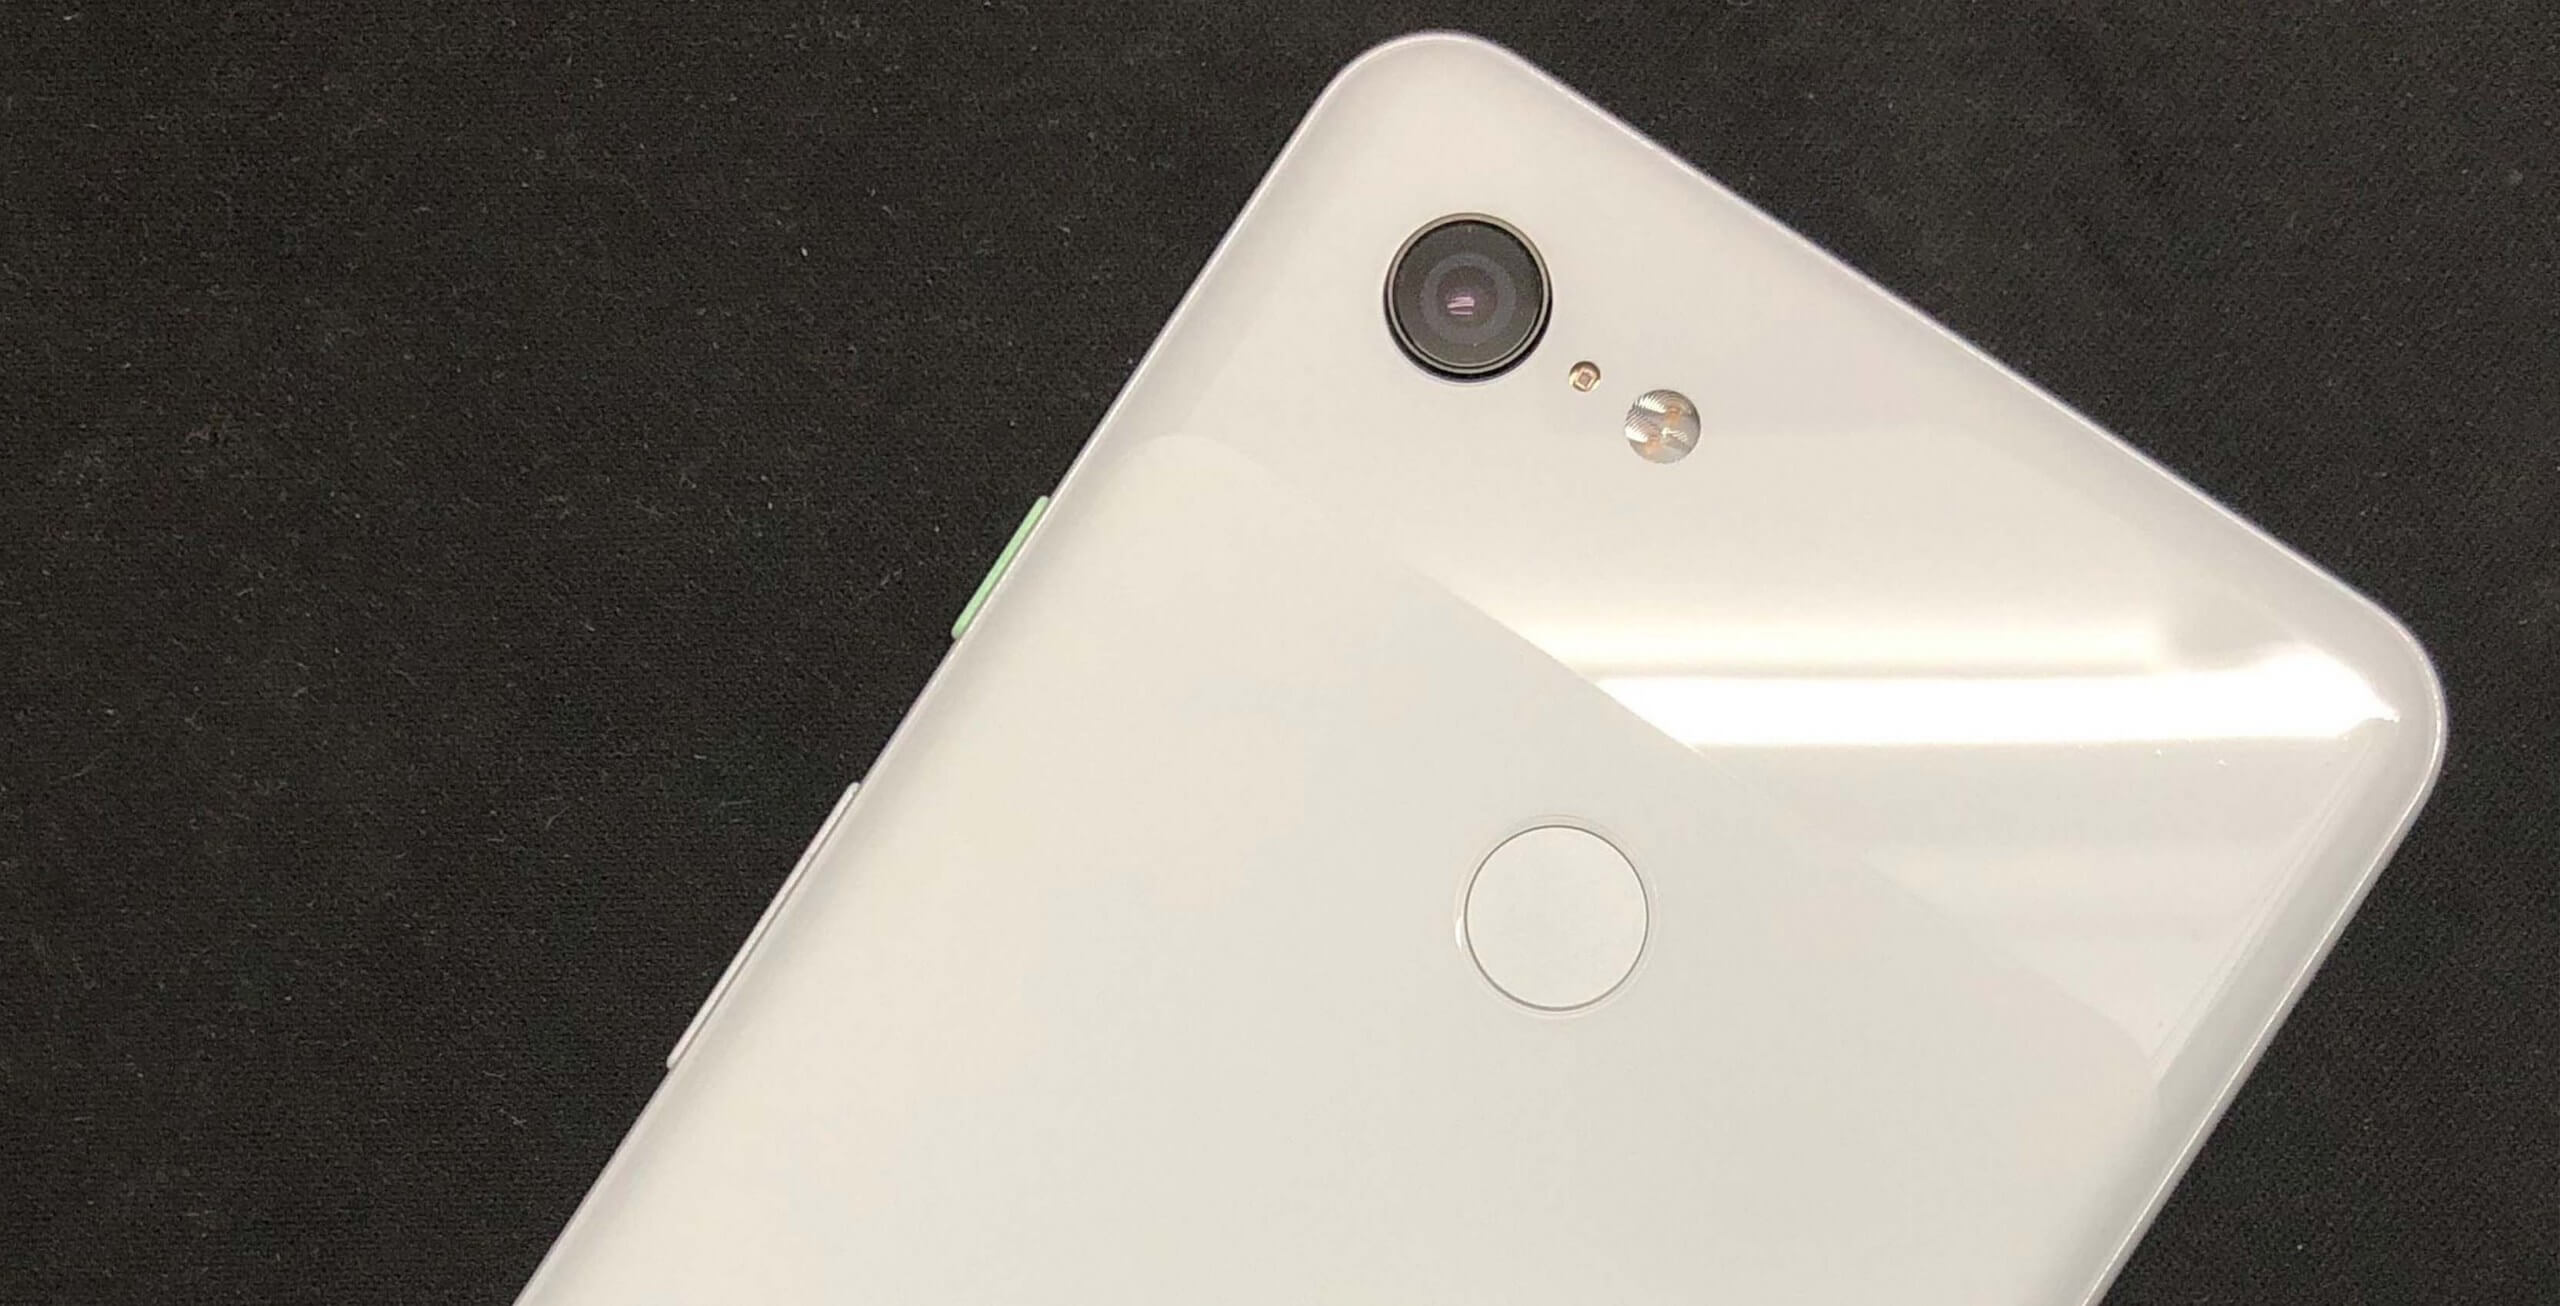 Google Pixel 3 Lite leaked in hands-on video review - TechSpot